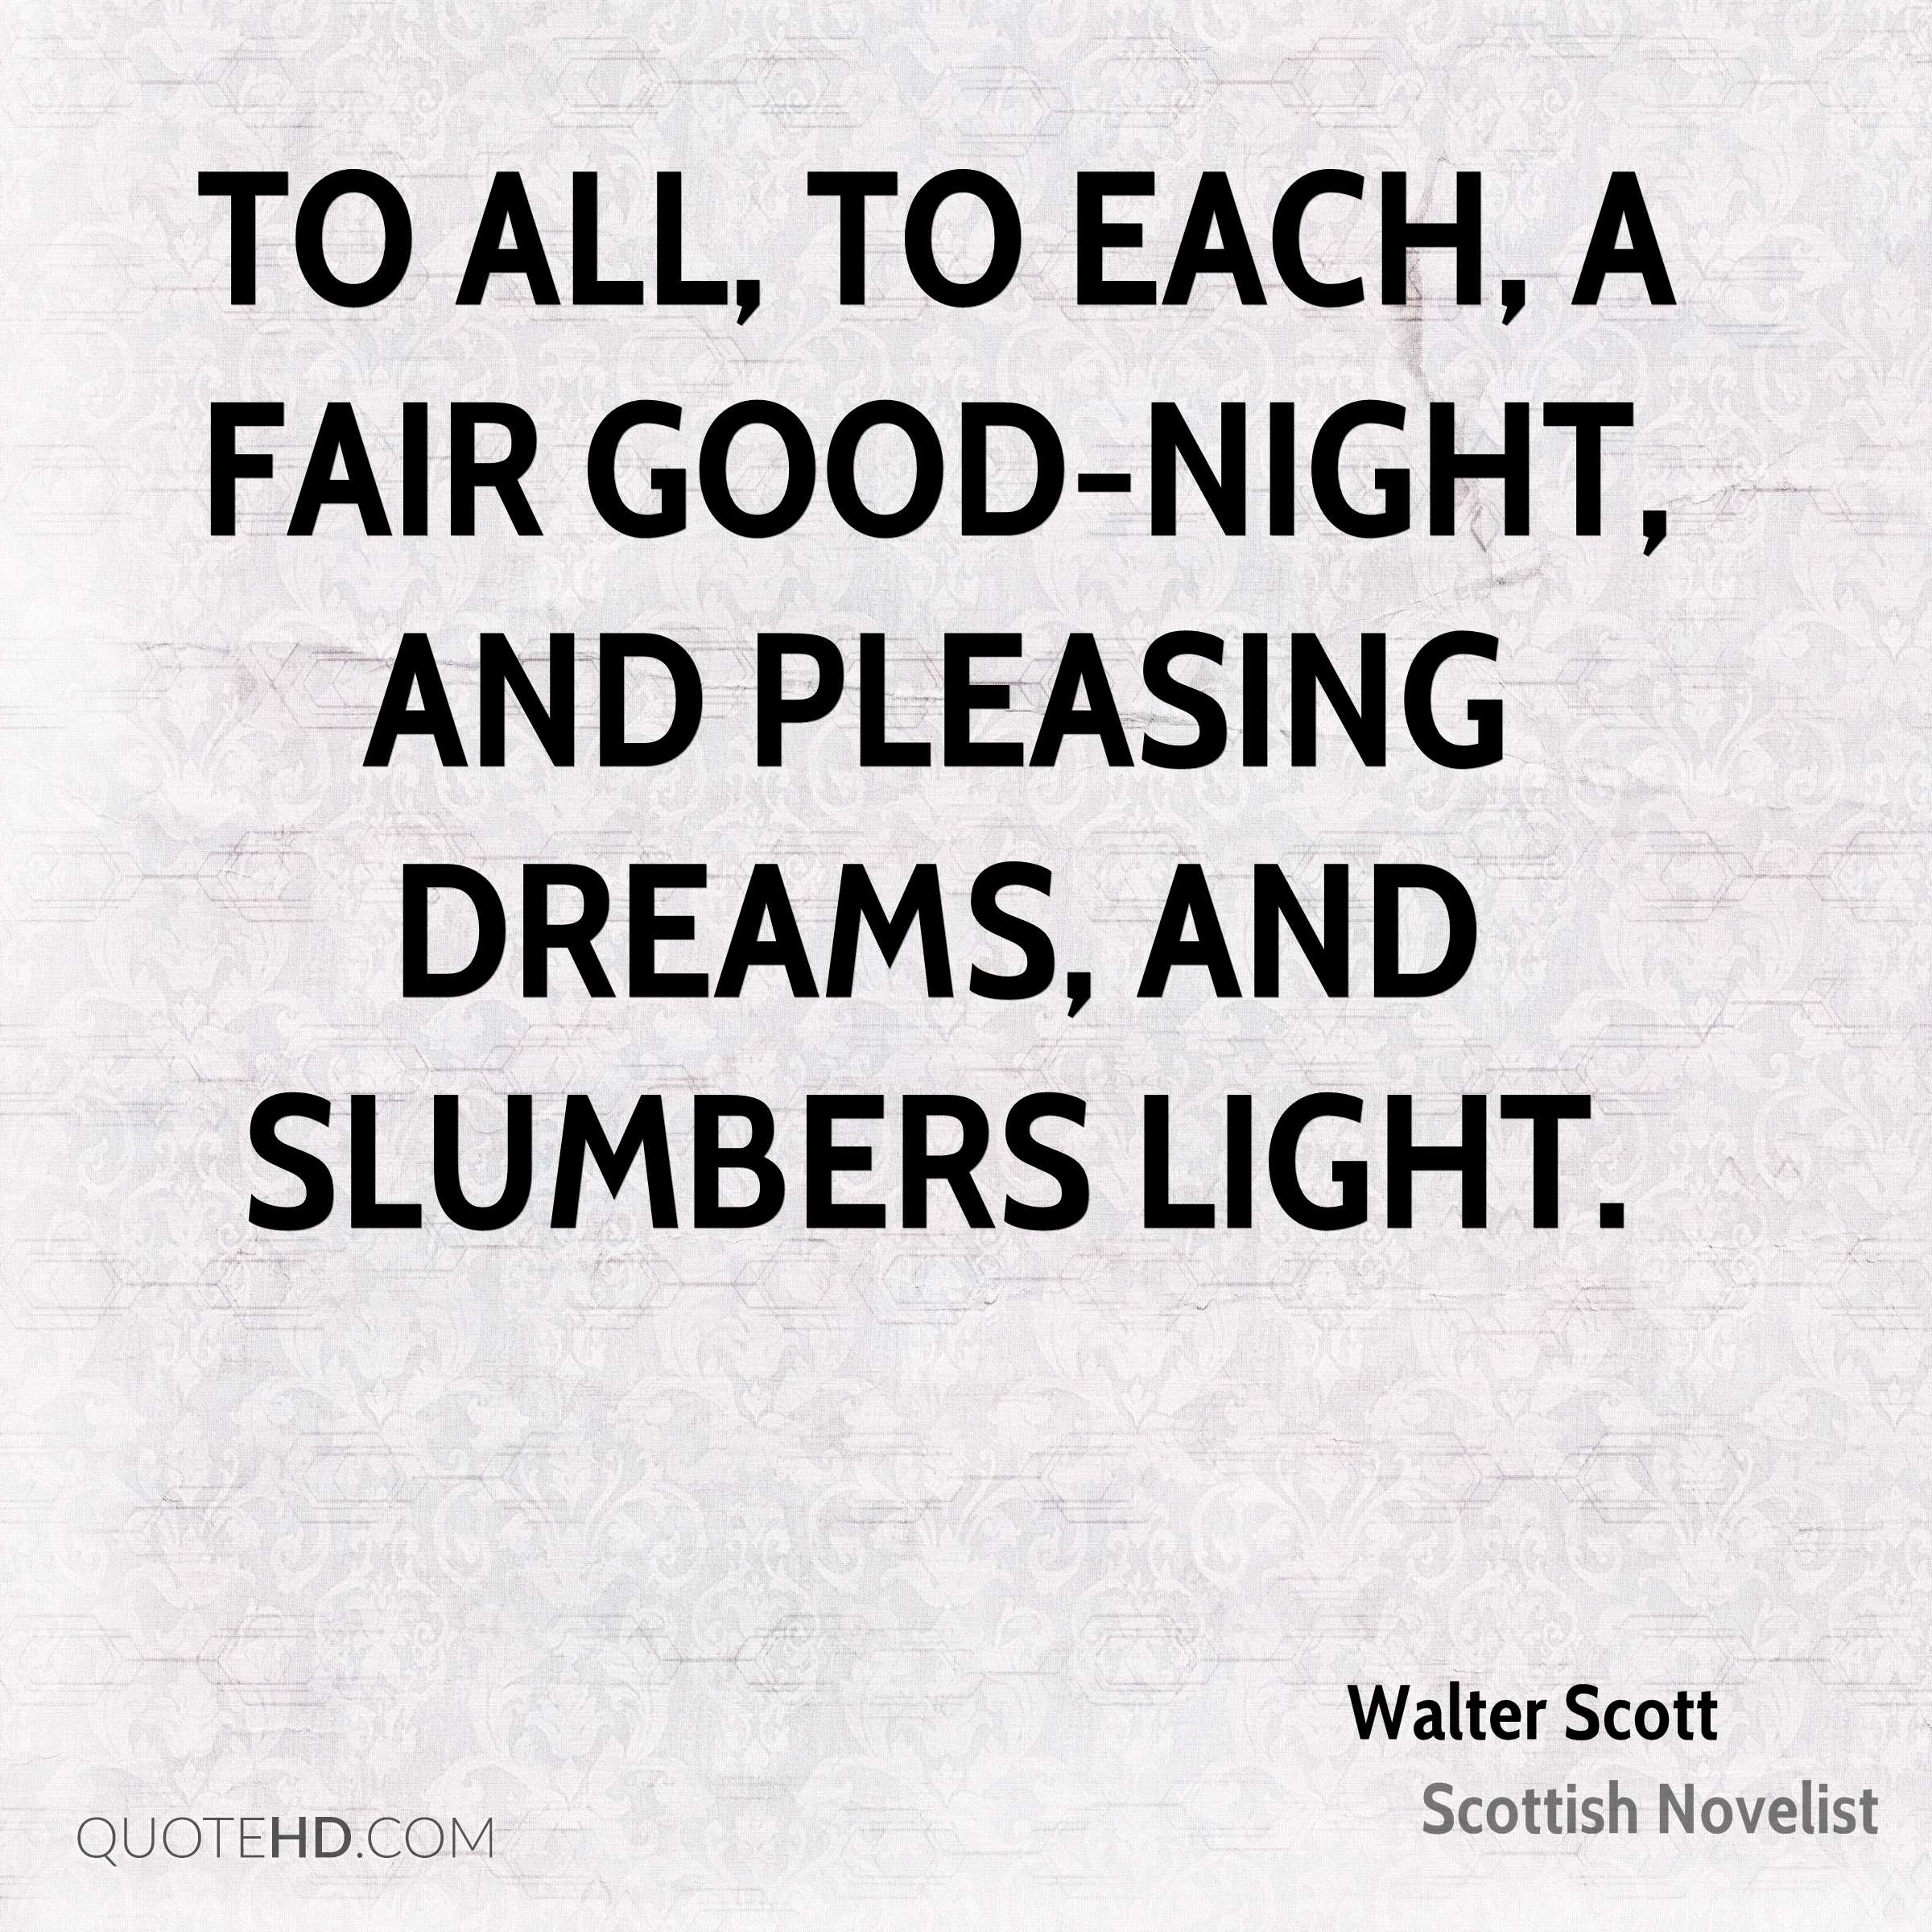 To all, to each, a fair good-night, and pleasing dreams, and slumbers light.